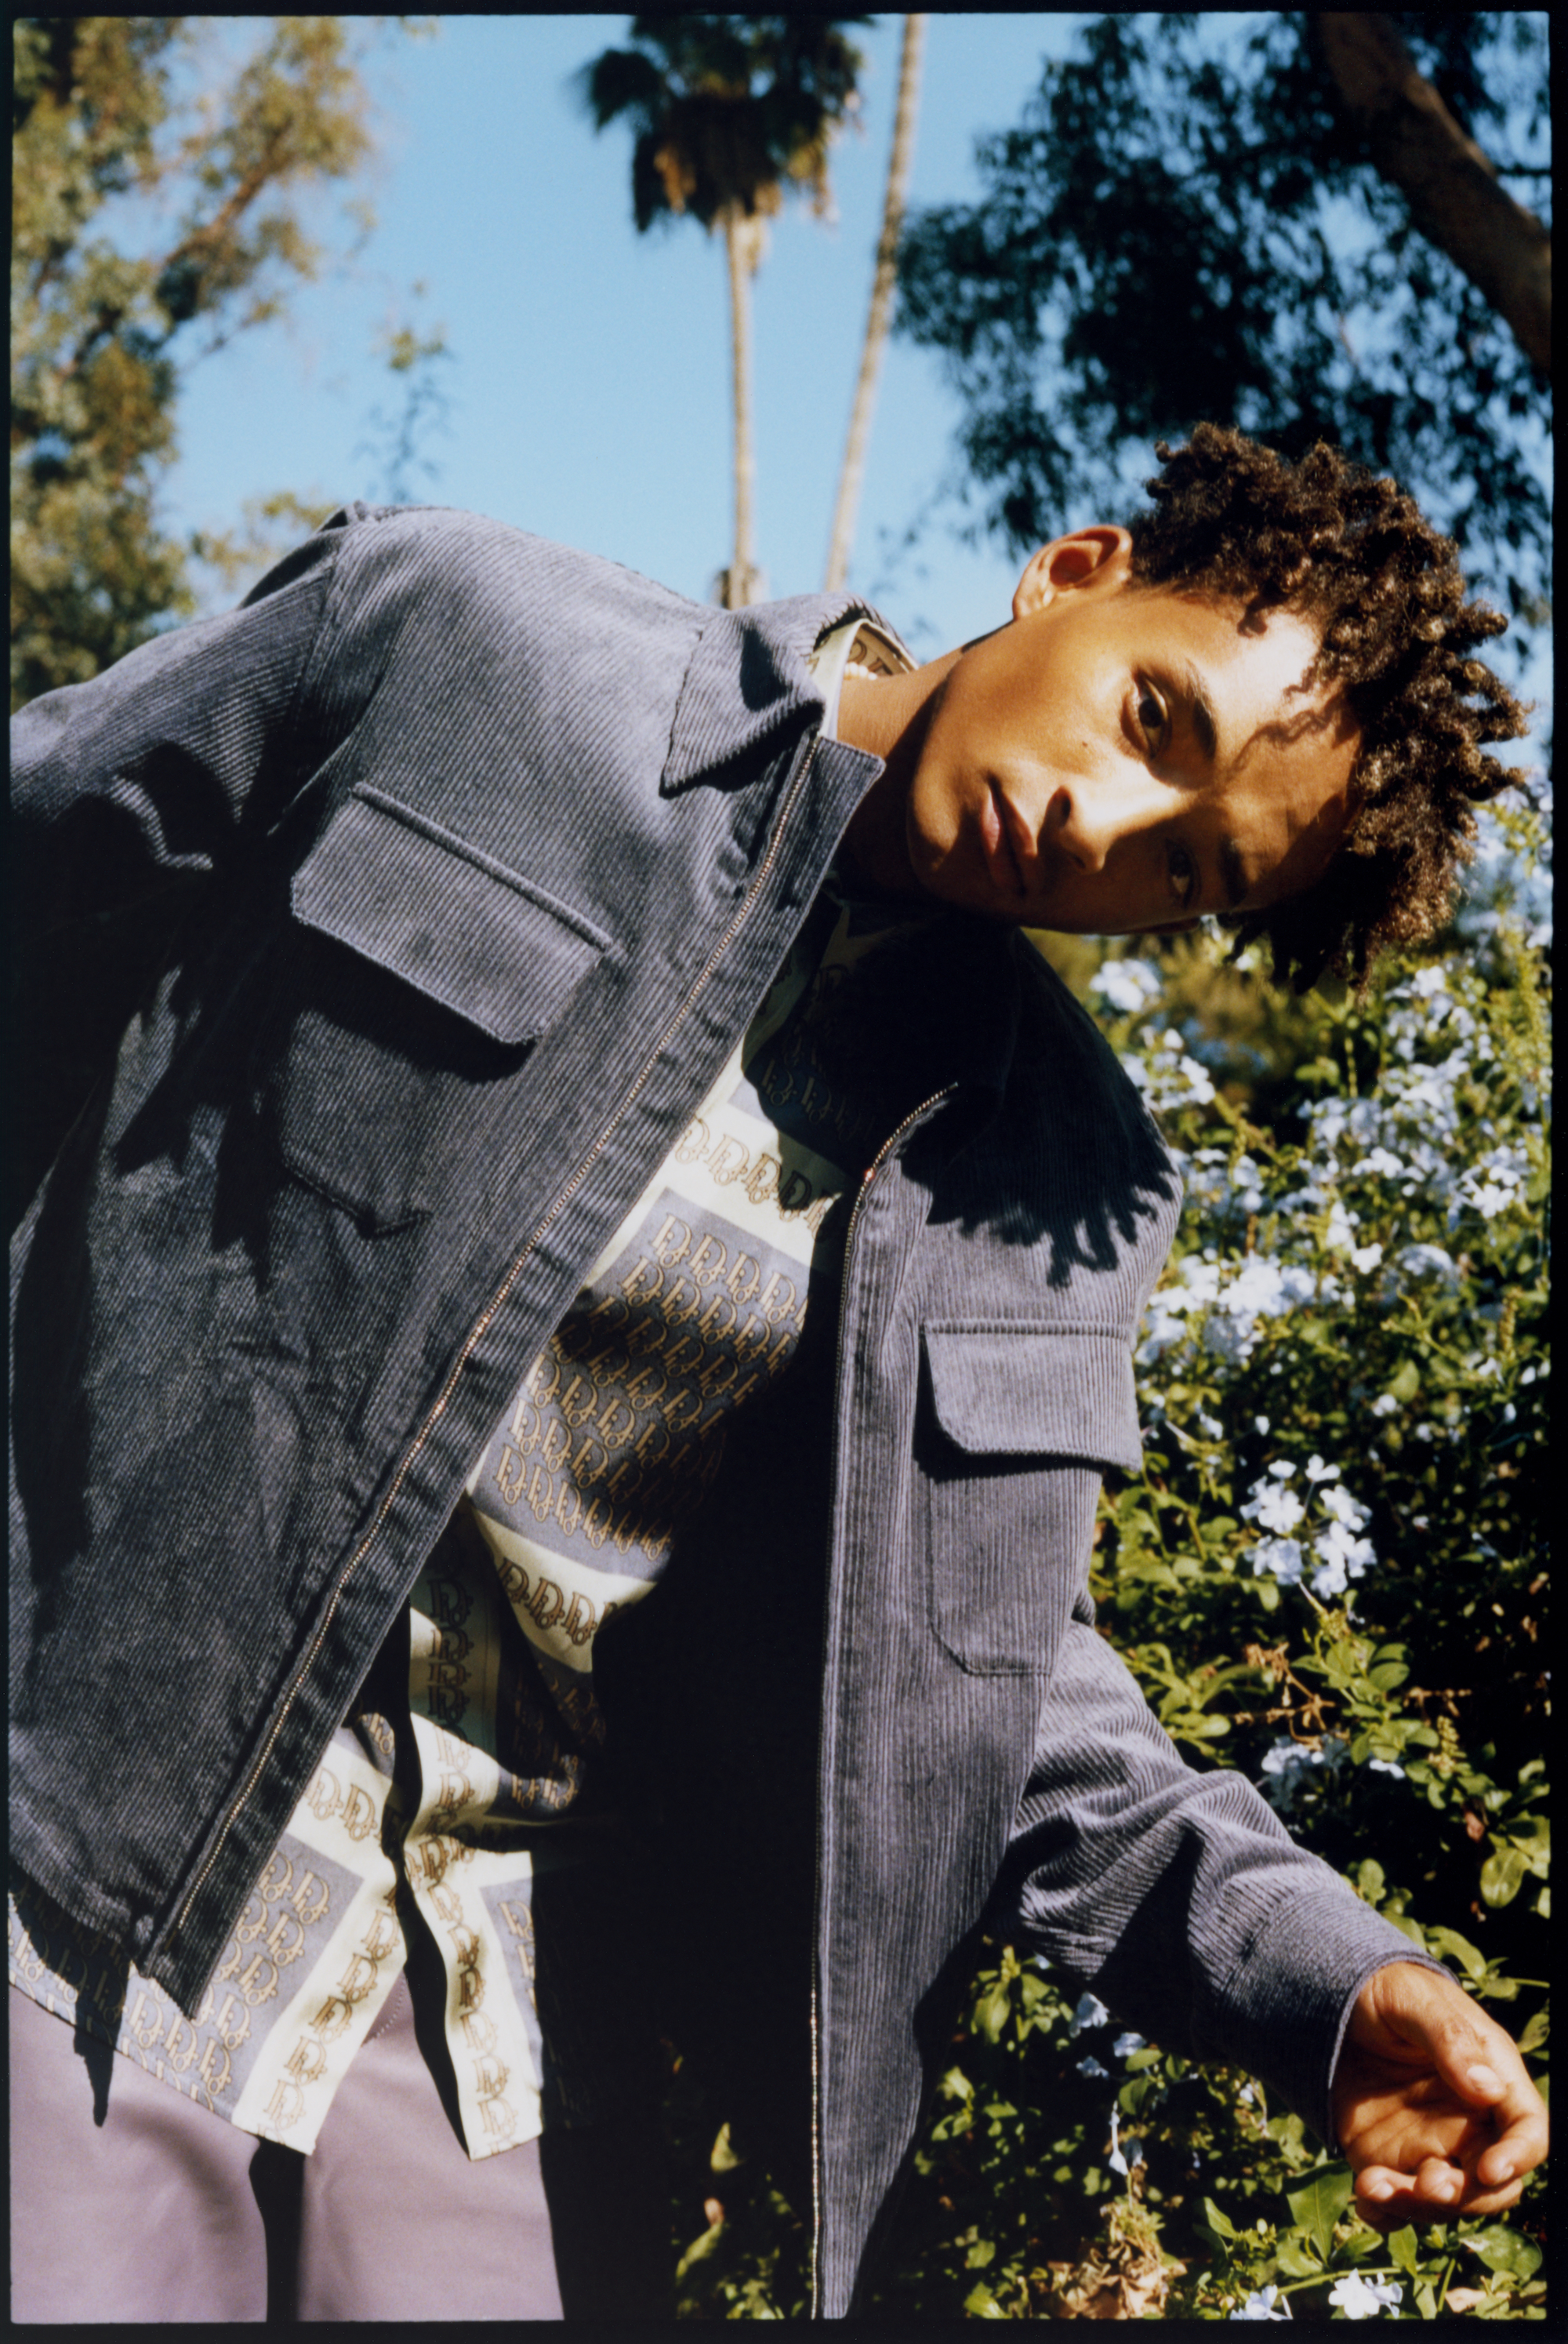 Jaden Smith wearing denim jacket